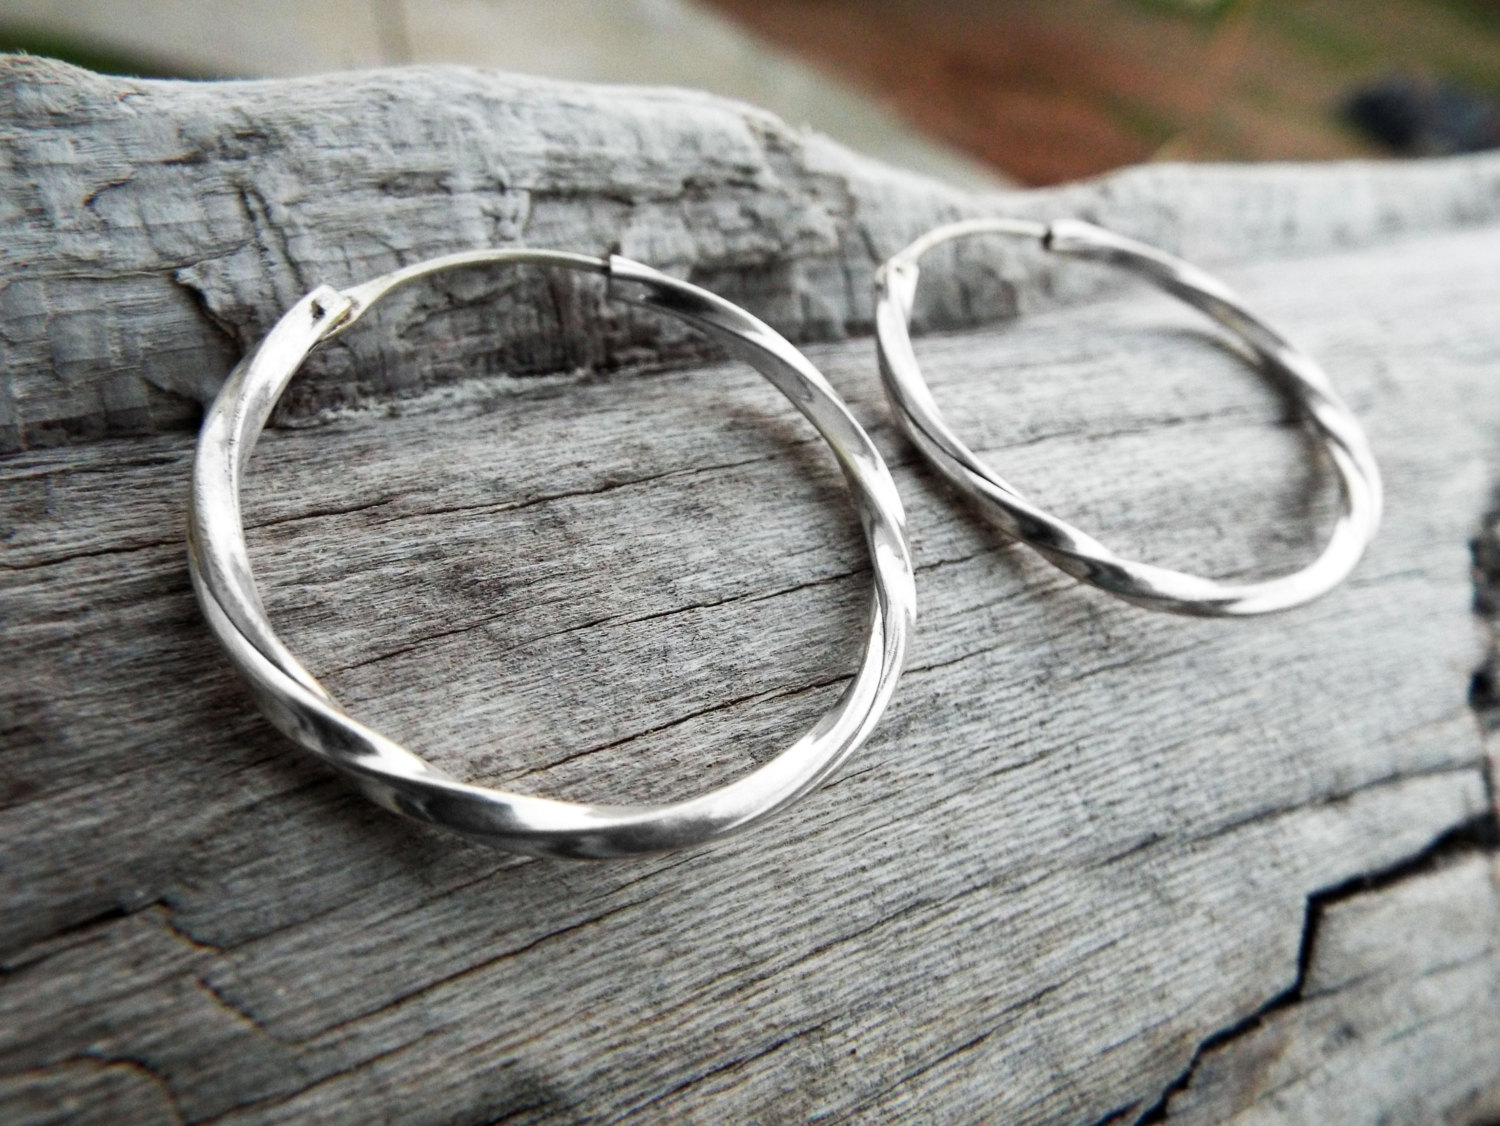 e998896bc Hoop Earrings Silver Bali Balinese Sterling 925 Tribal Handmade Jewelry  Classic Traditional